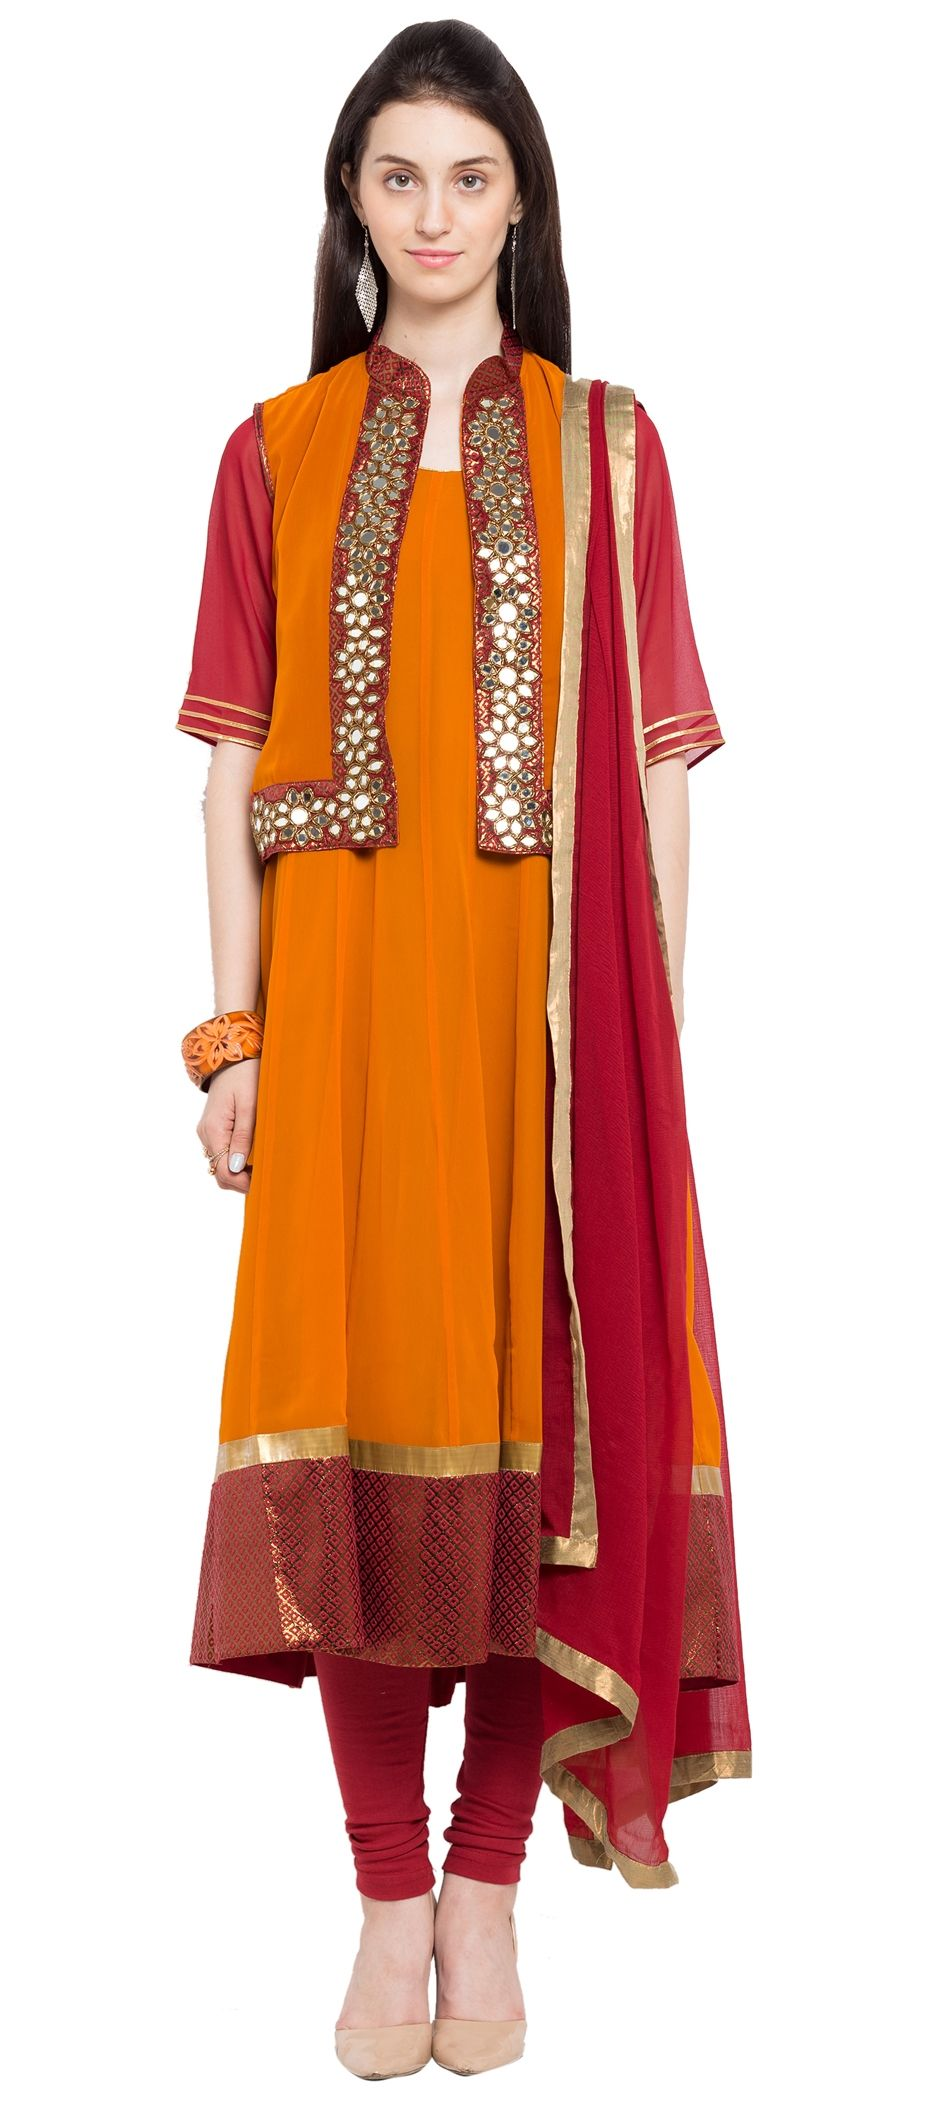 903515 Orange color family Anarkali Suits in Faux Georgette fabric ...